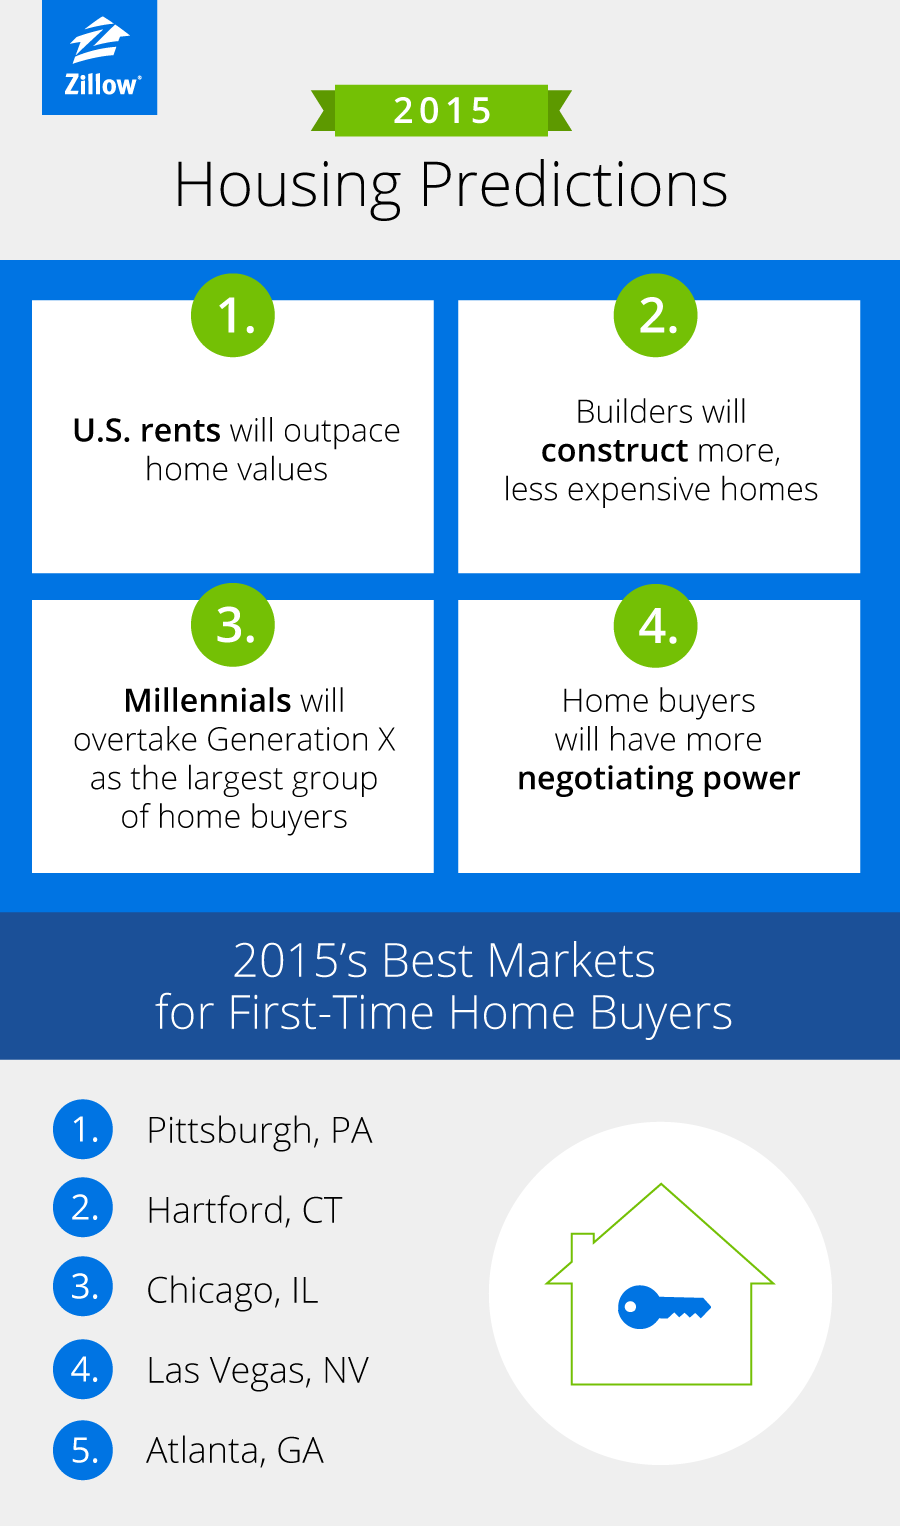 HousingPredictions_2015_Zillow_d